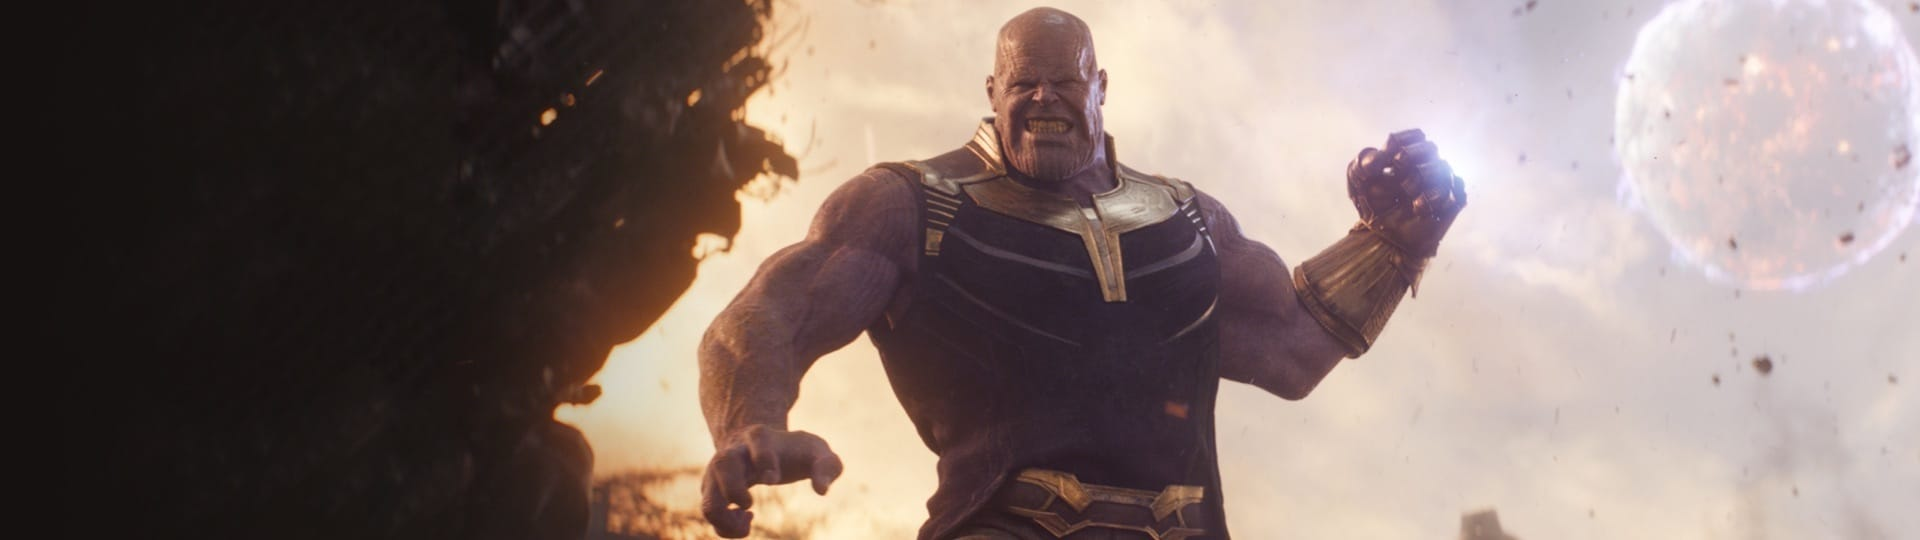 V2 Avengers: Infinity War | 26 april in de bioscoop